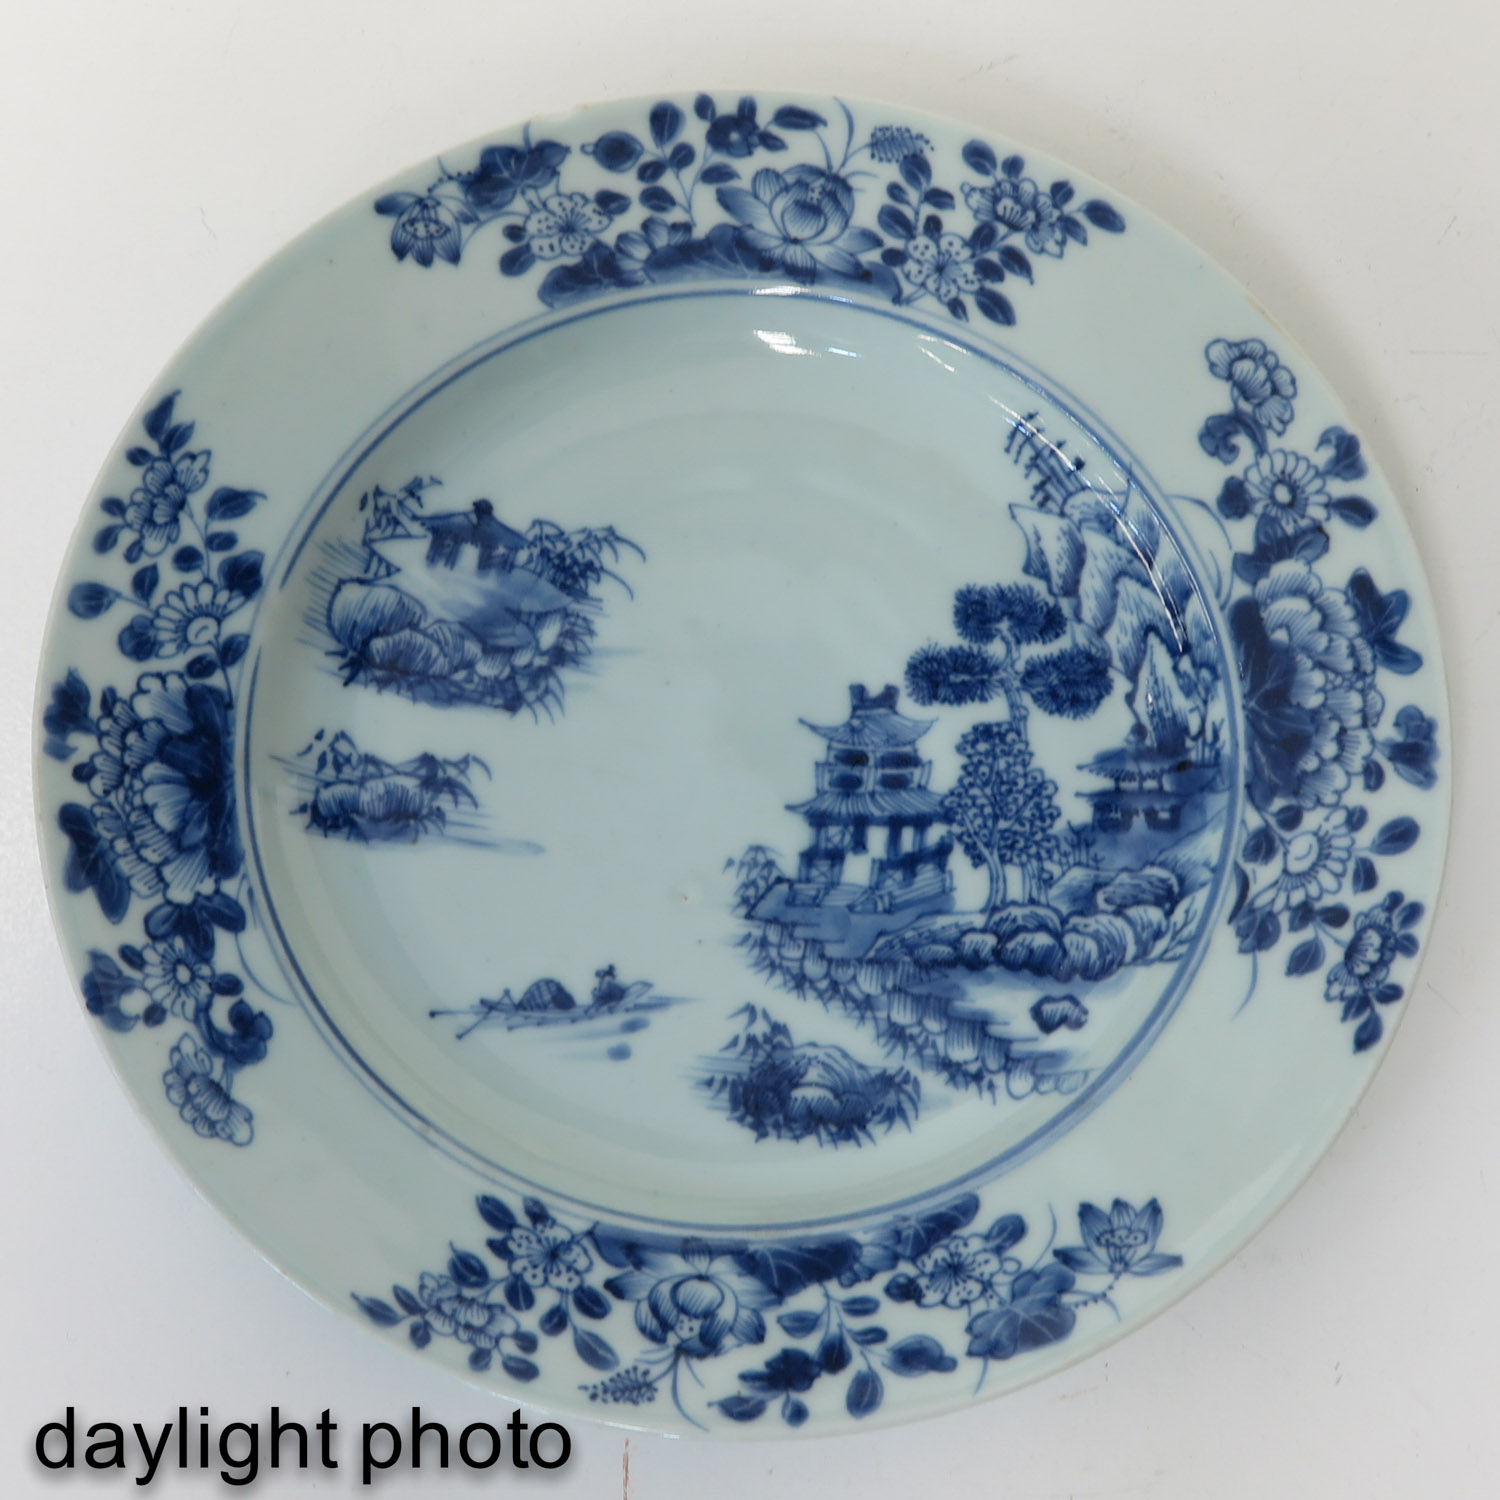 A Series of 3 Blue and White Plates - Image 9 of 10